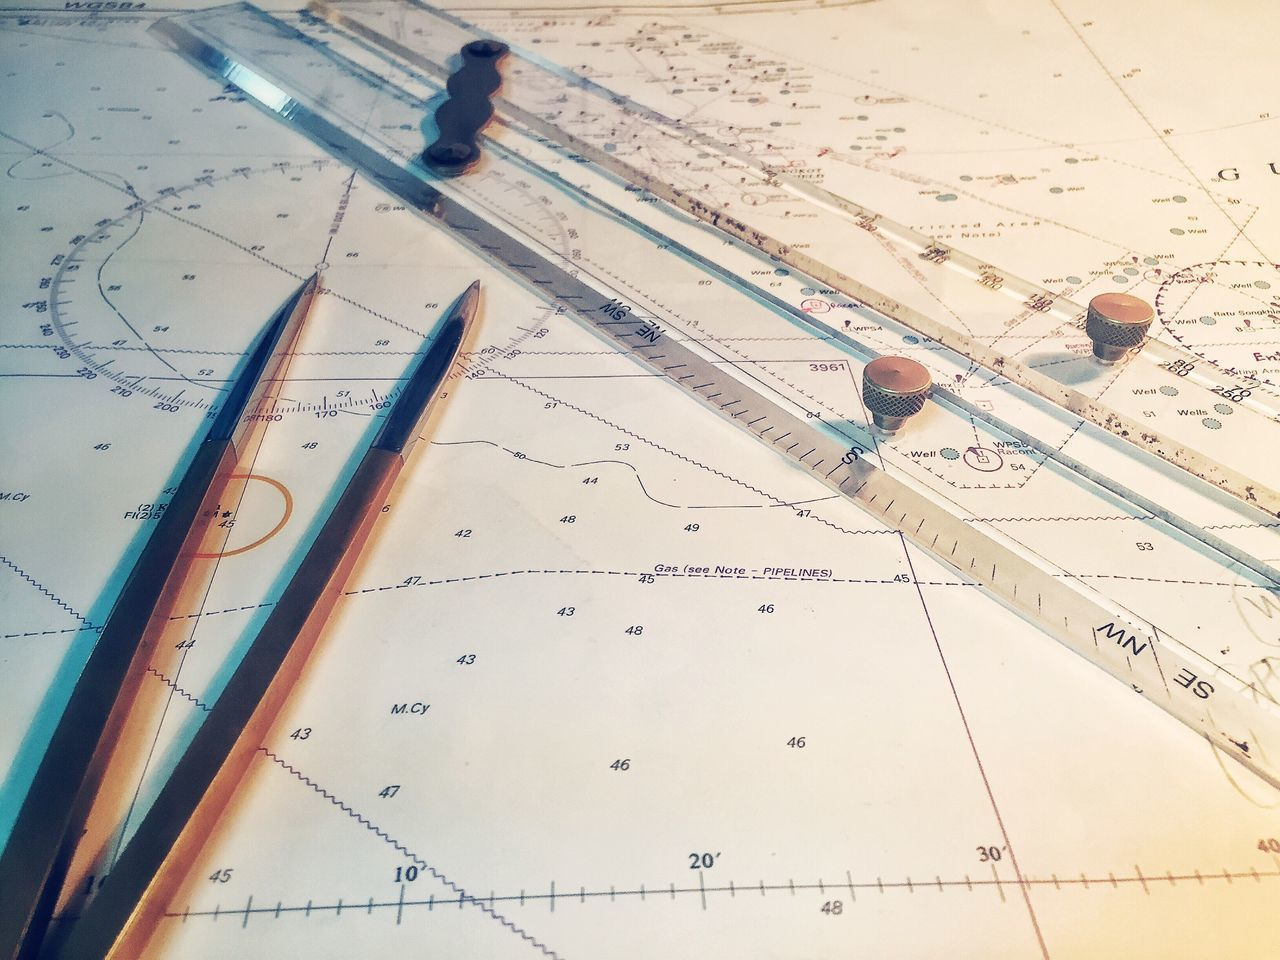 Navigation Chart Compass Rose  Compass Travel Ruler Parallel Lines Longitude Latitude North South East West Coastline Deep Sea Sea